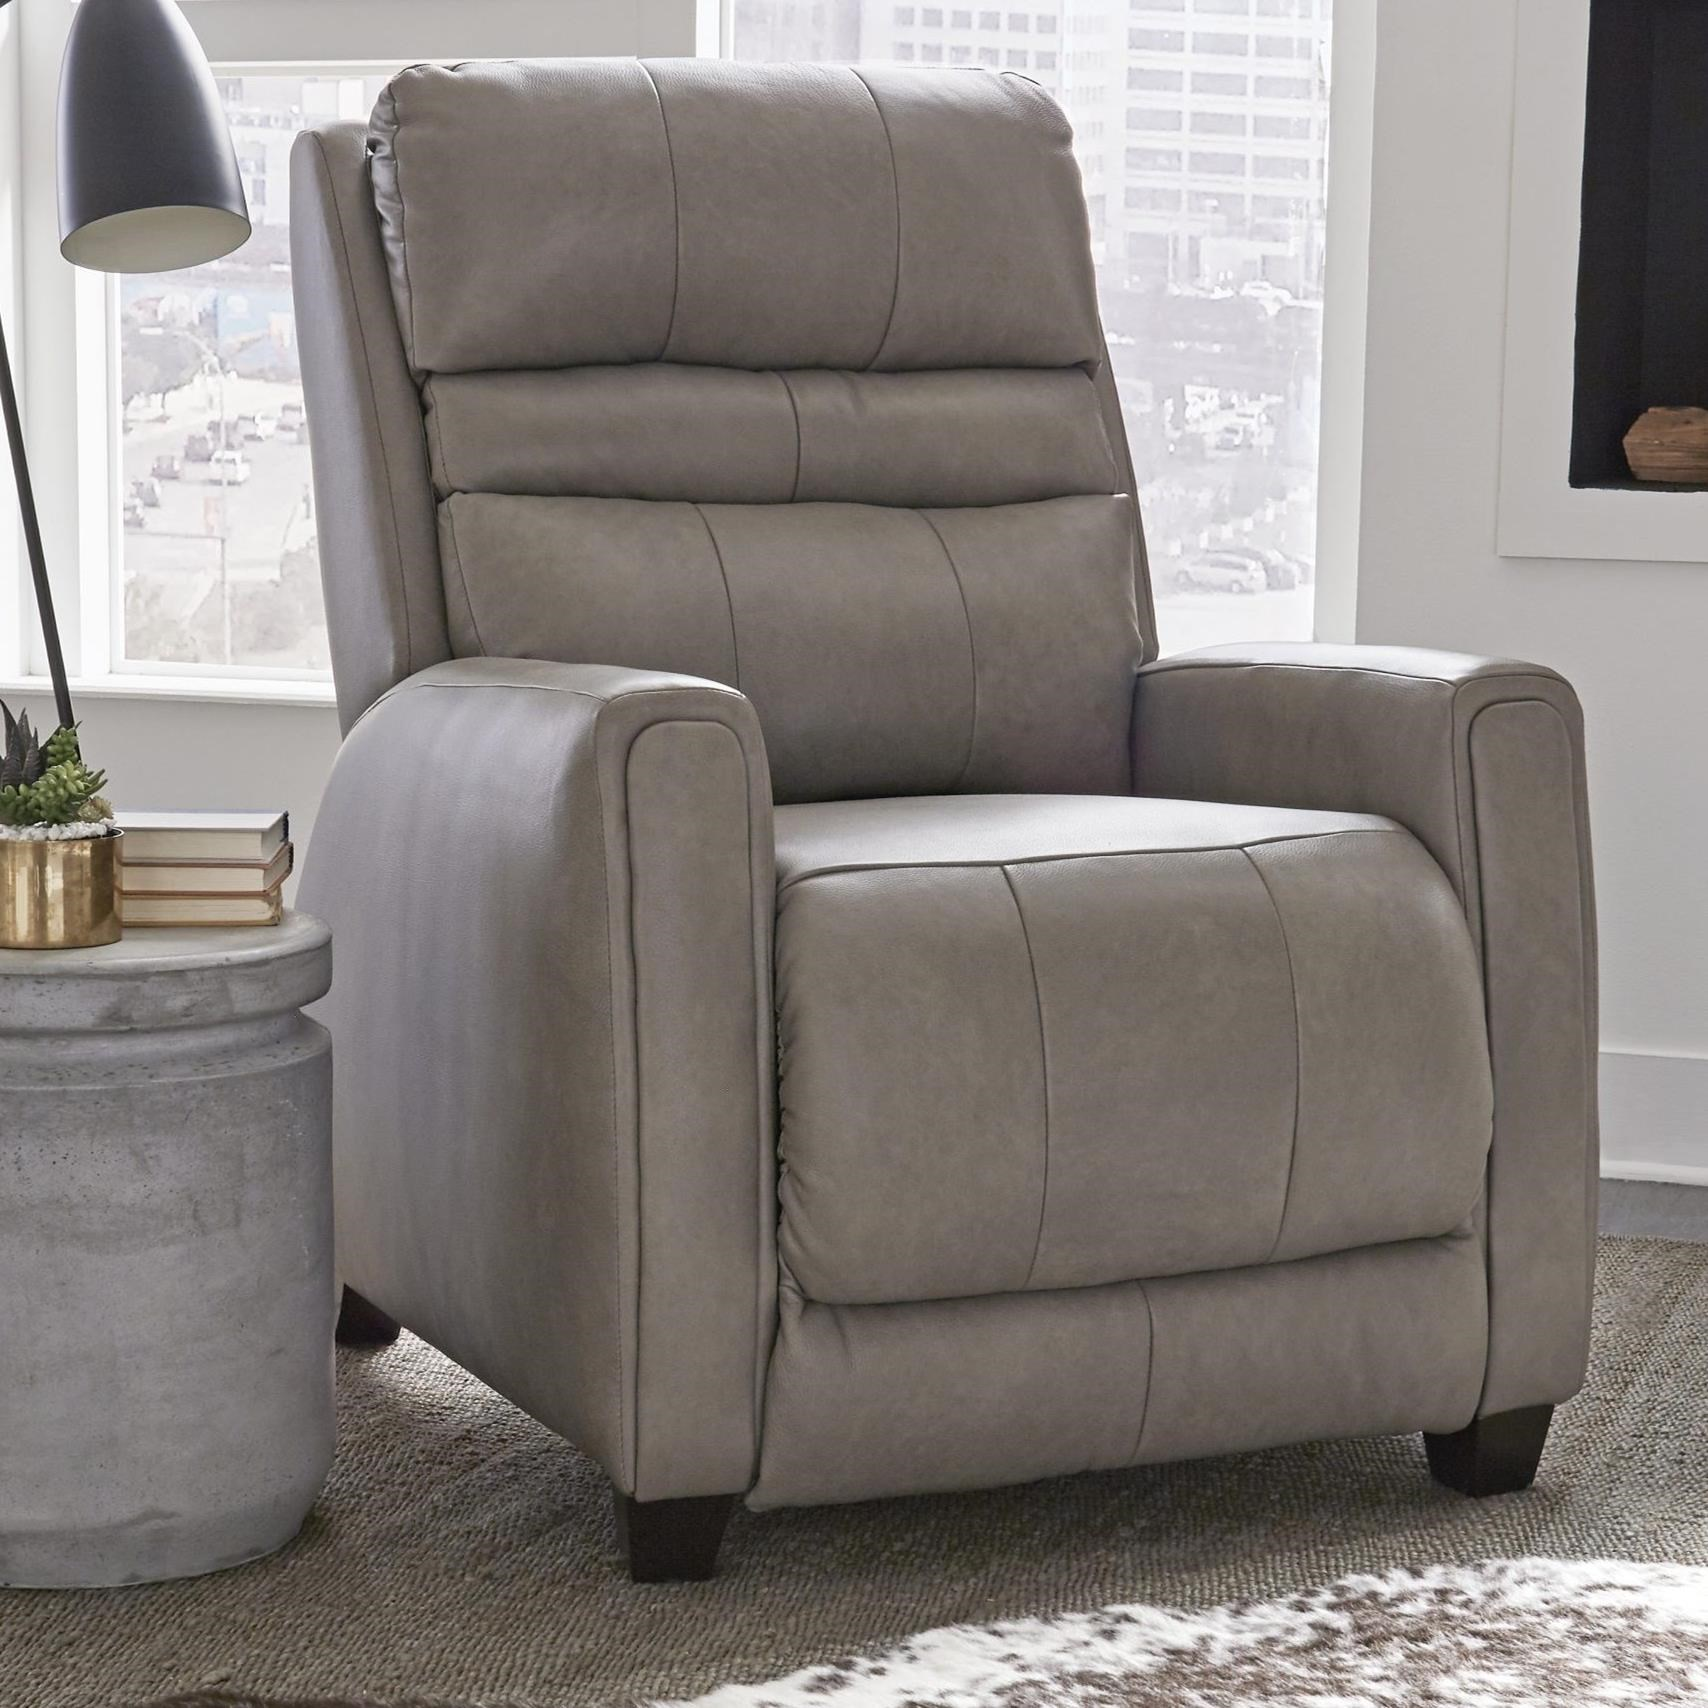 Turbo Zero Gravity Recliner with Power Headrest by Southern Motion at Westrich Furniture & Appliances